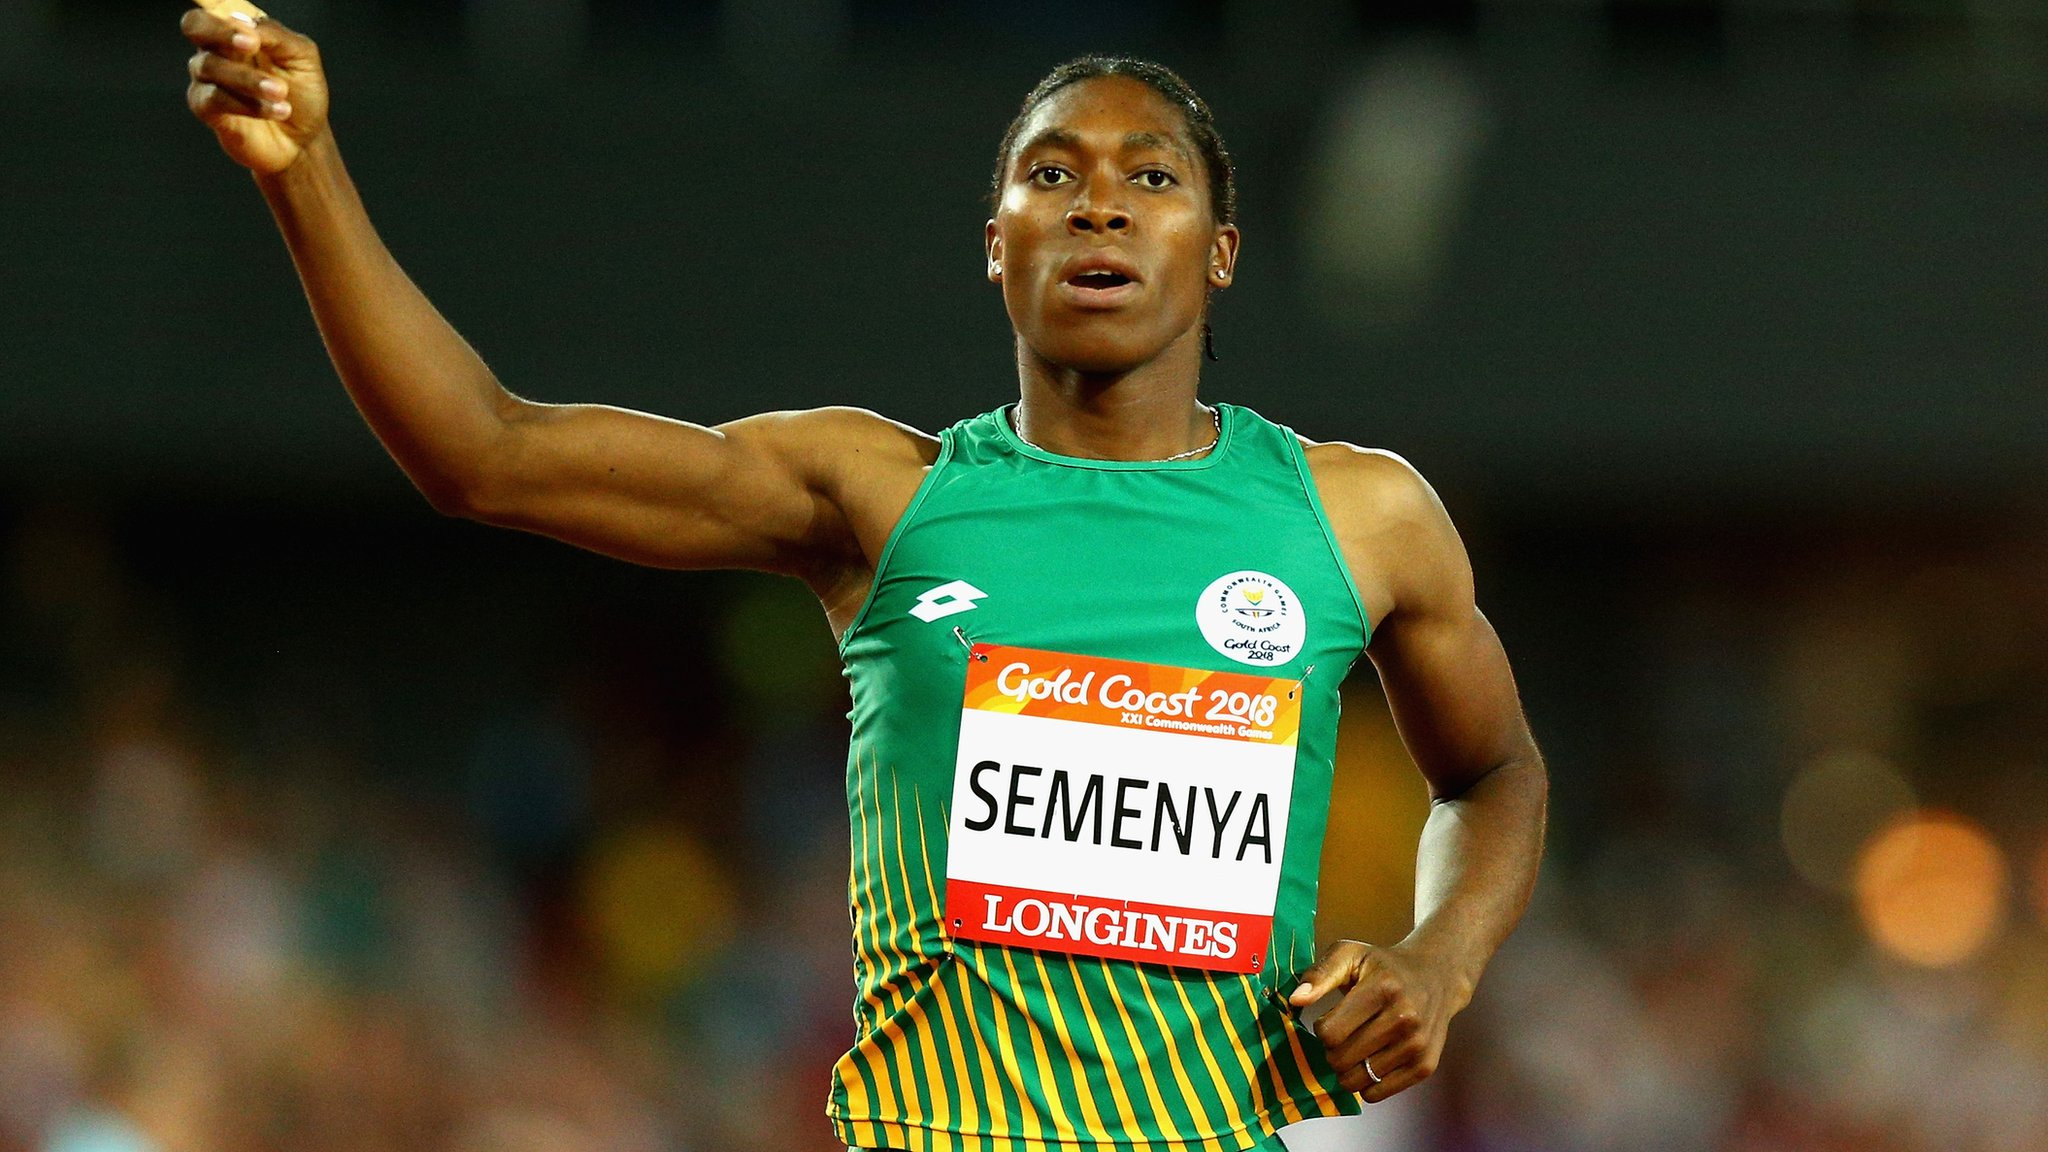 Caster Semenya: Olympic champion to challenge 'unfair' IAAF testosterone ruling